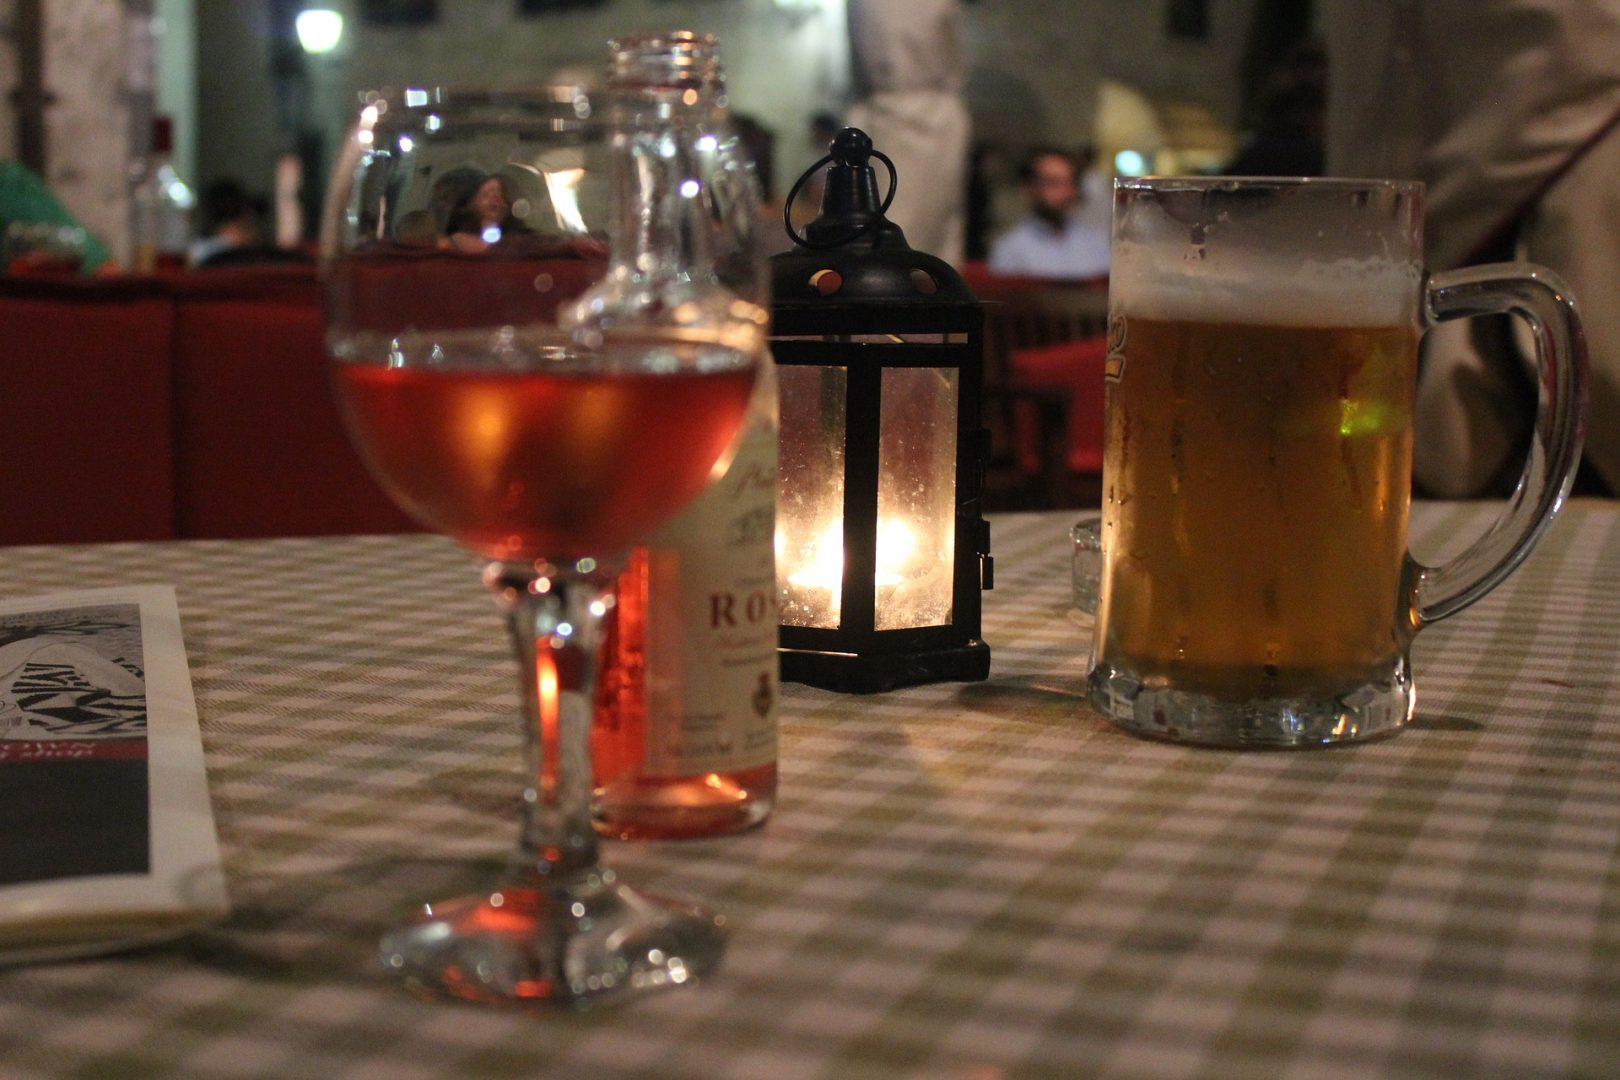 A table with a glas of wine and a beer on it